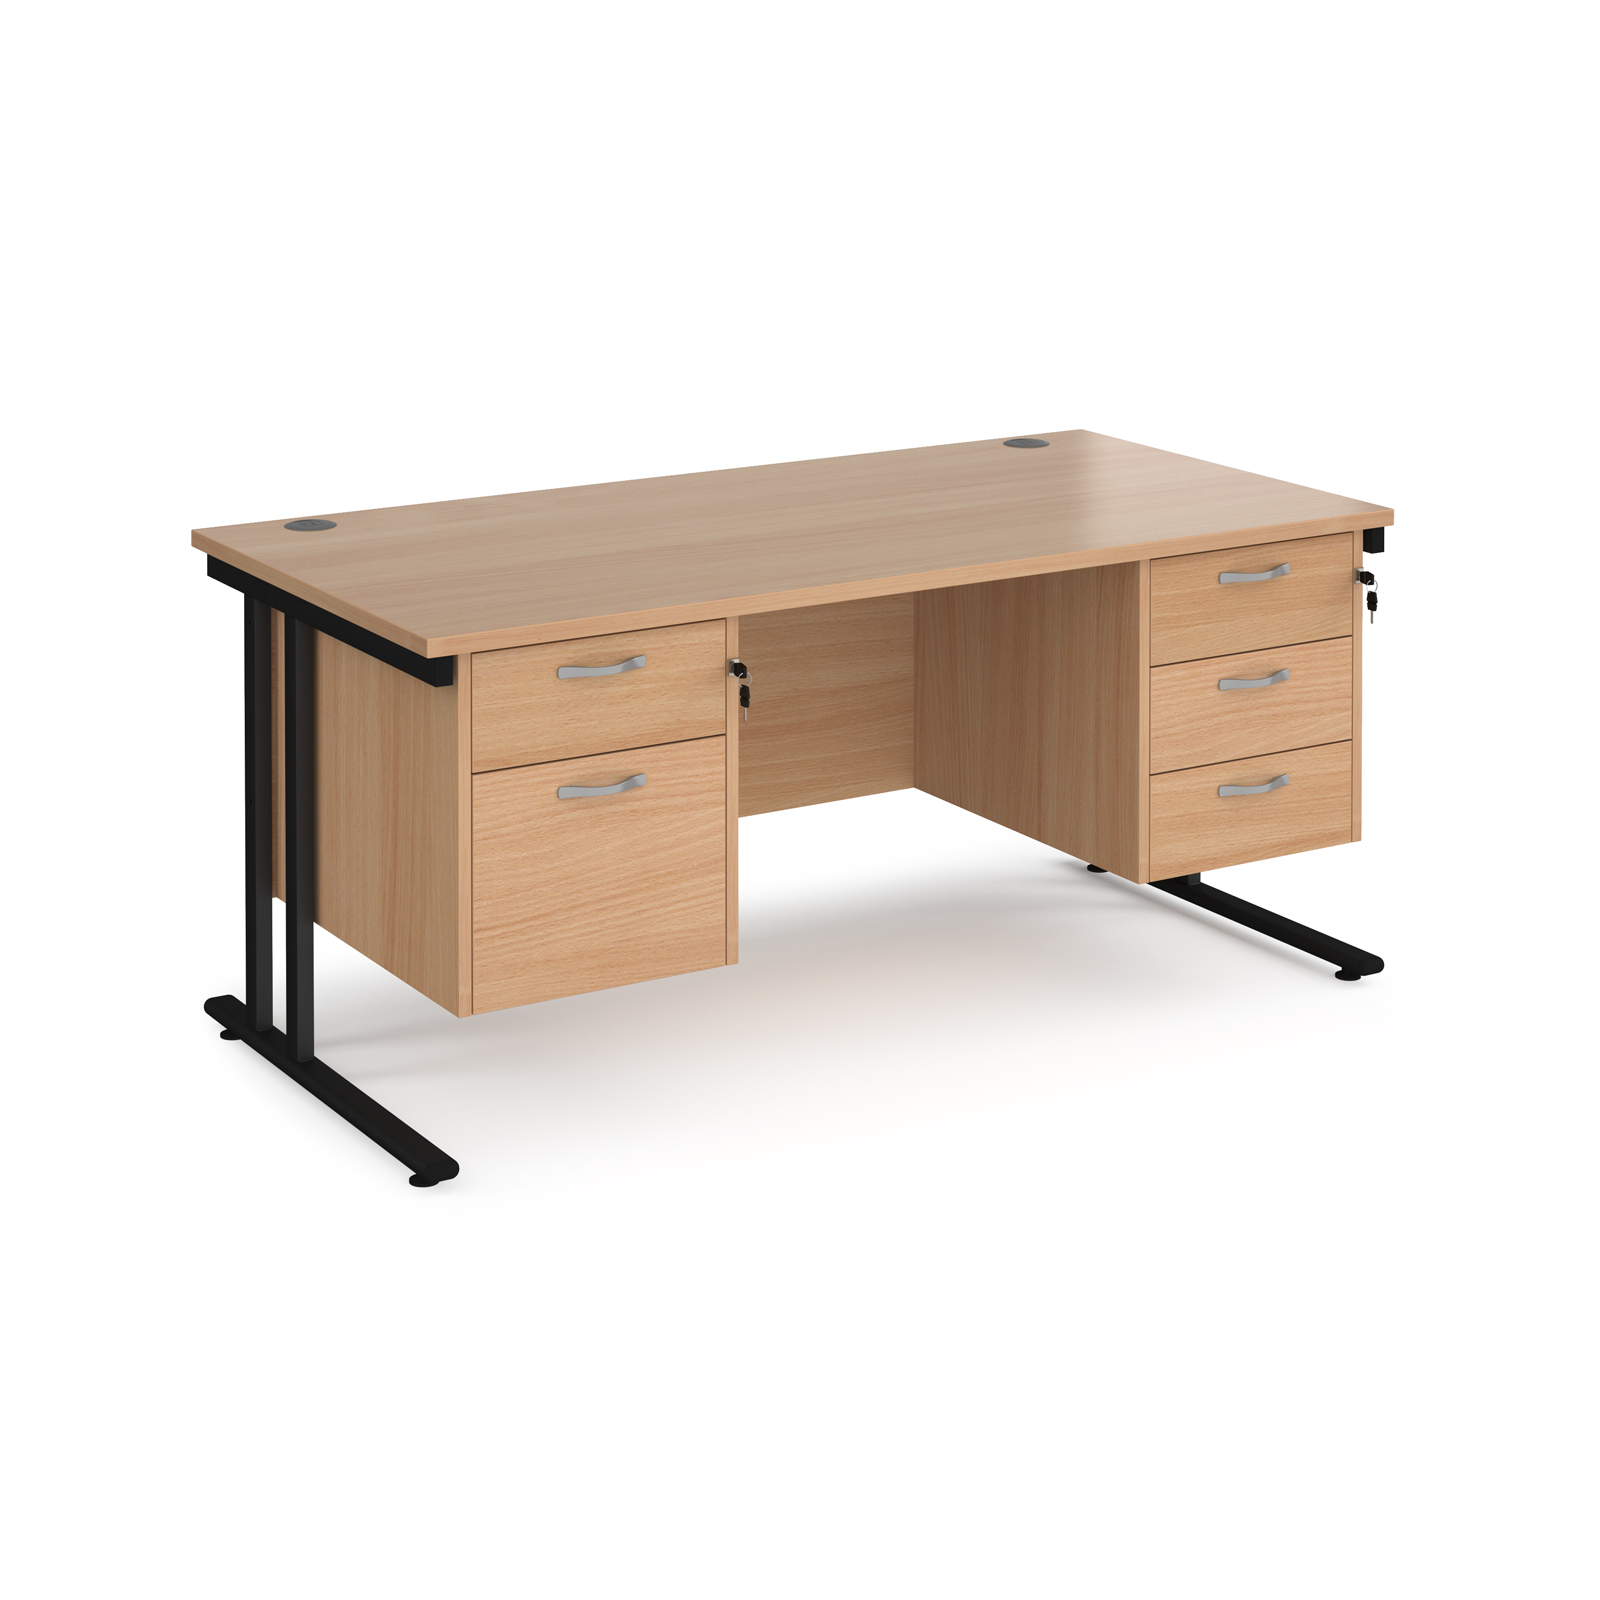 Maestro 25 straight desk 1600mm x 800mm with 2 and 3 drawer pedestals - black cantilever leg frame, beech top